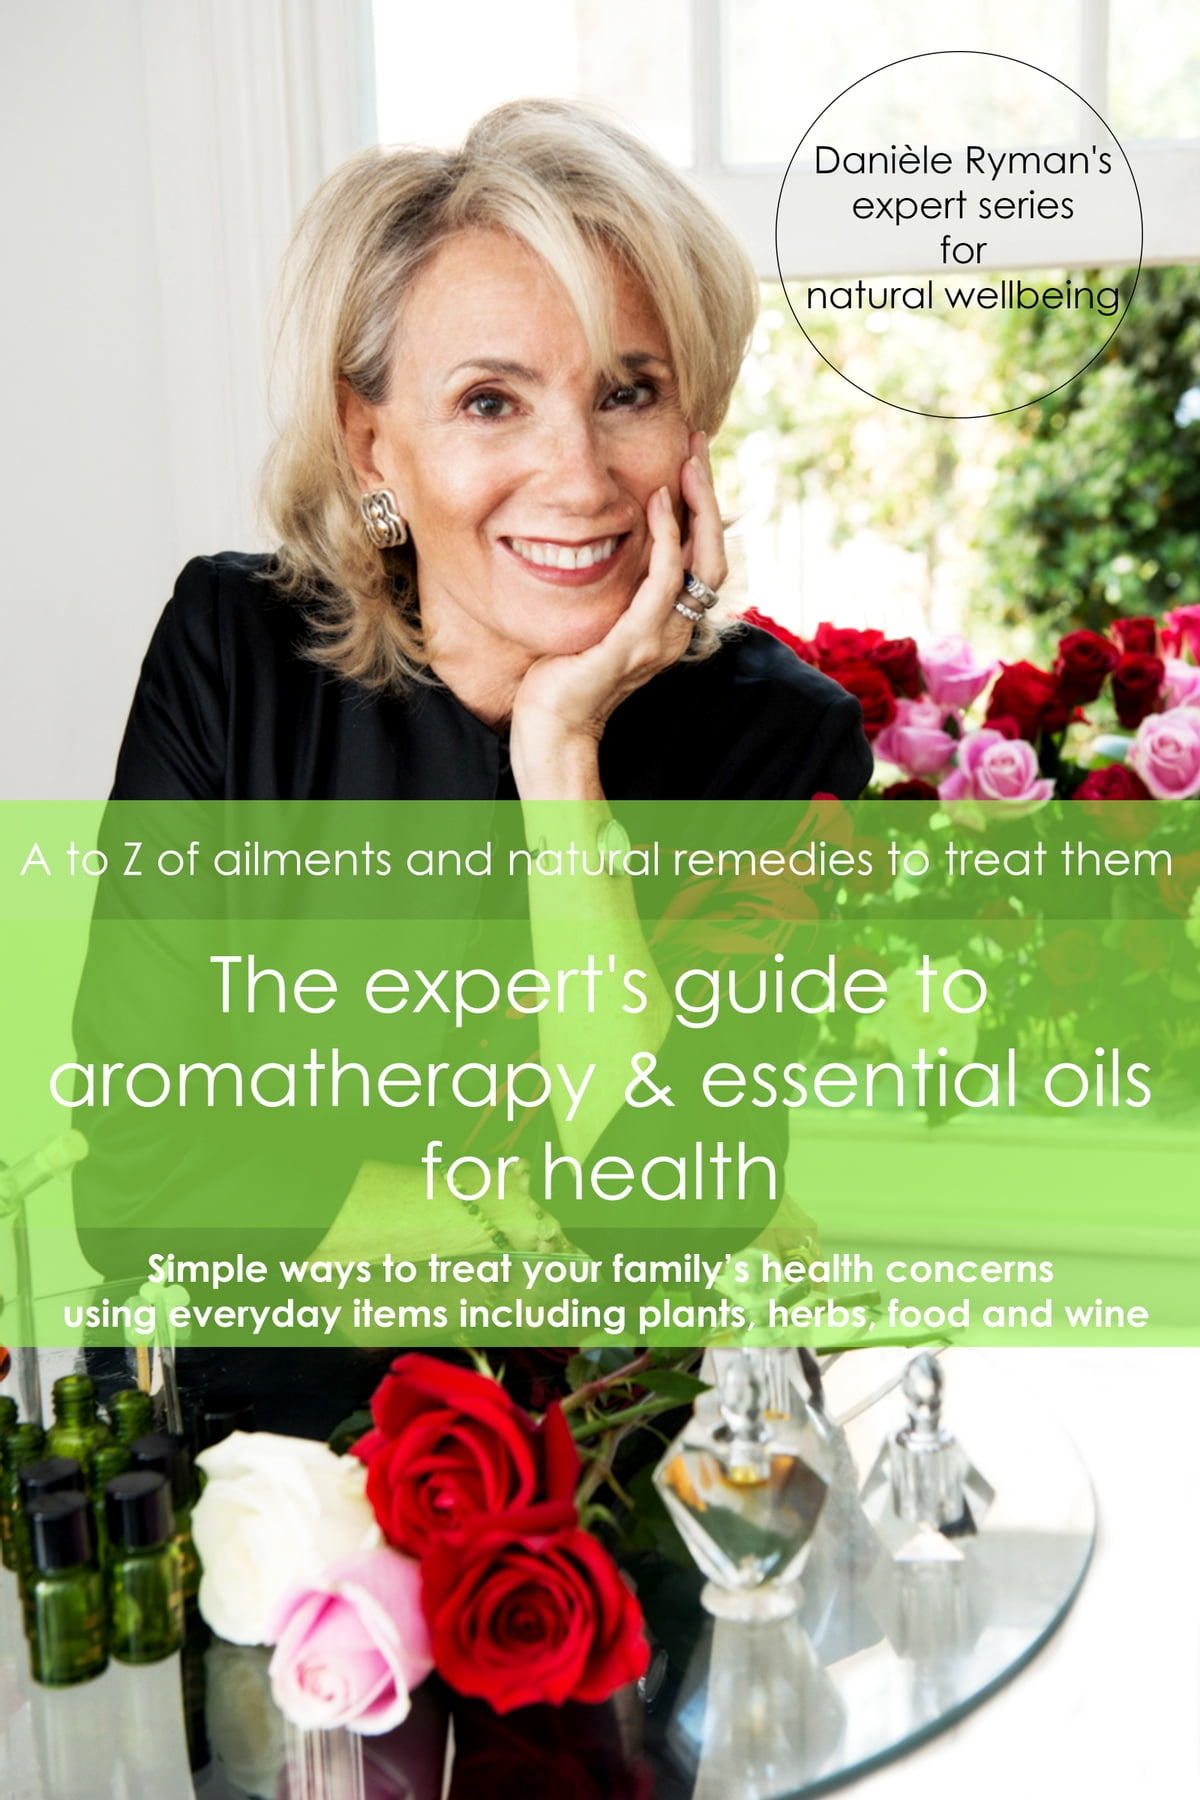 250 essential oil recipes for everyday to improve your well being